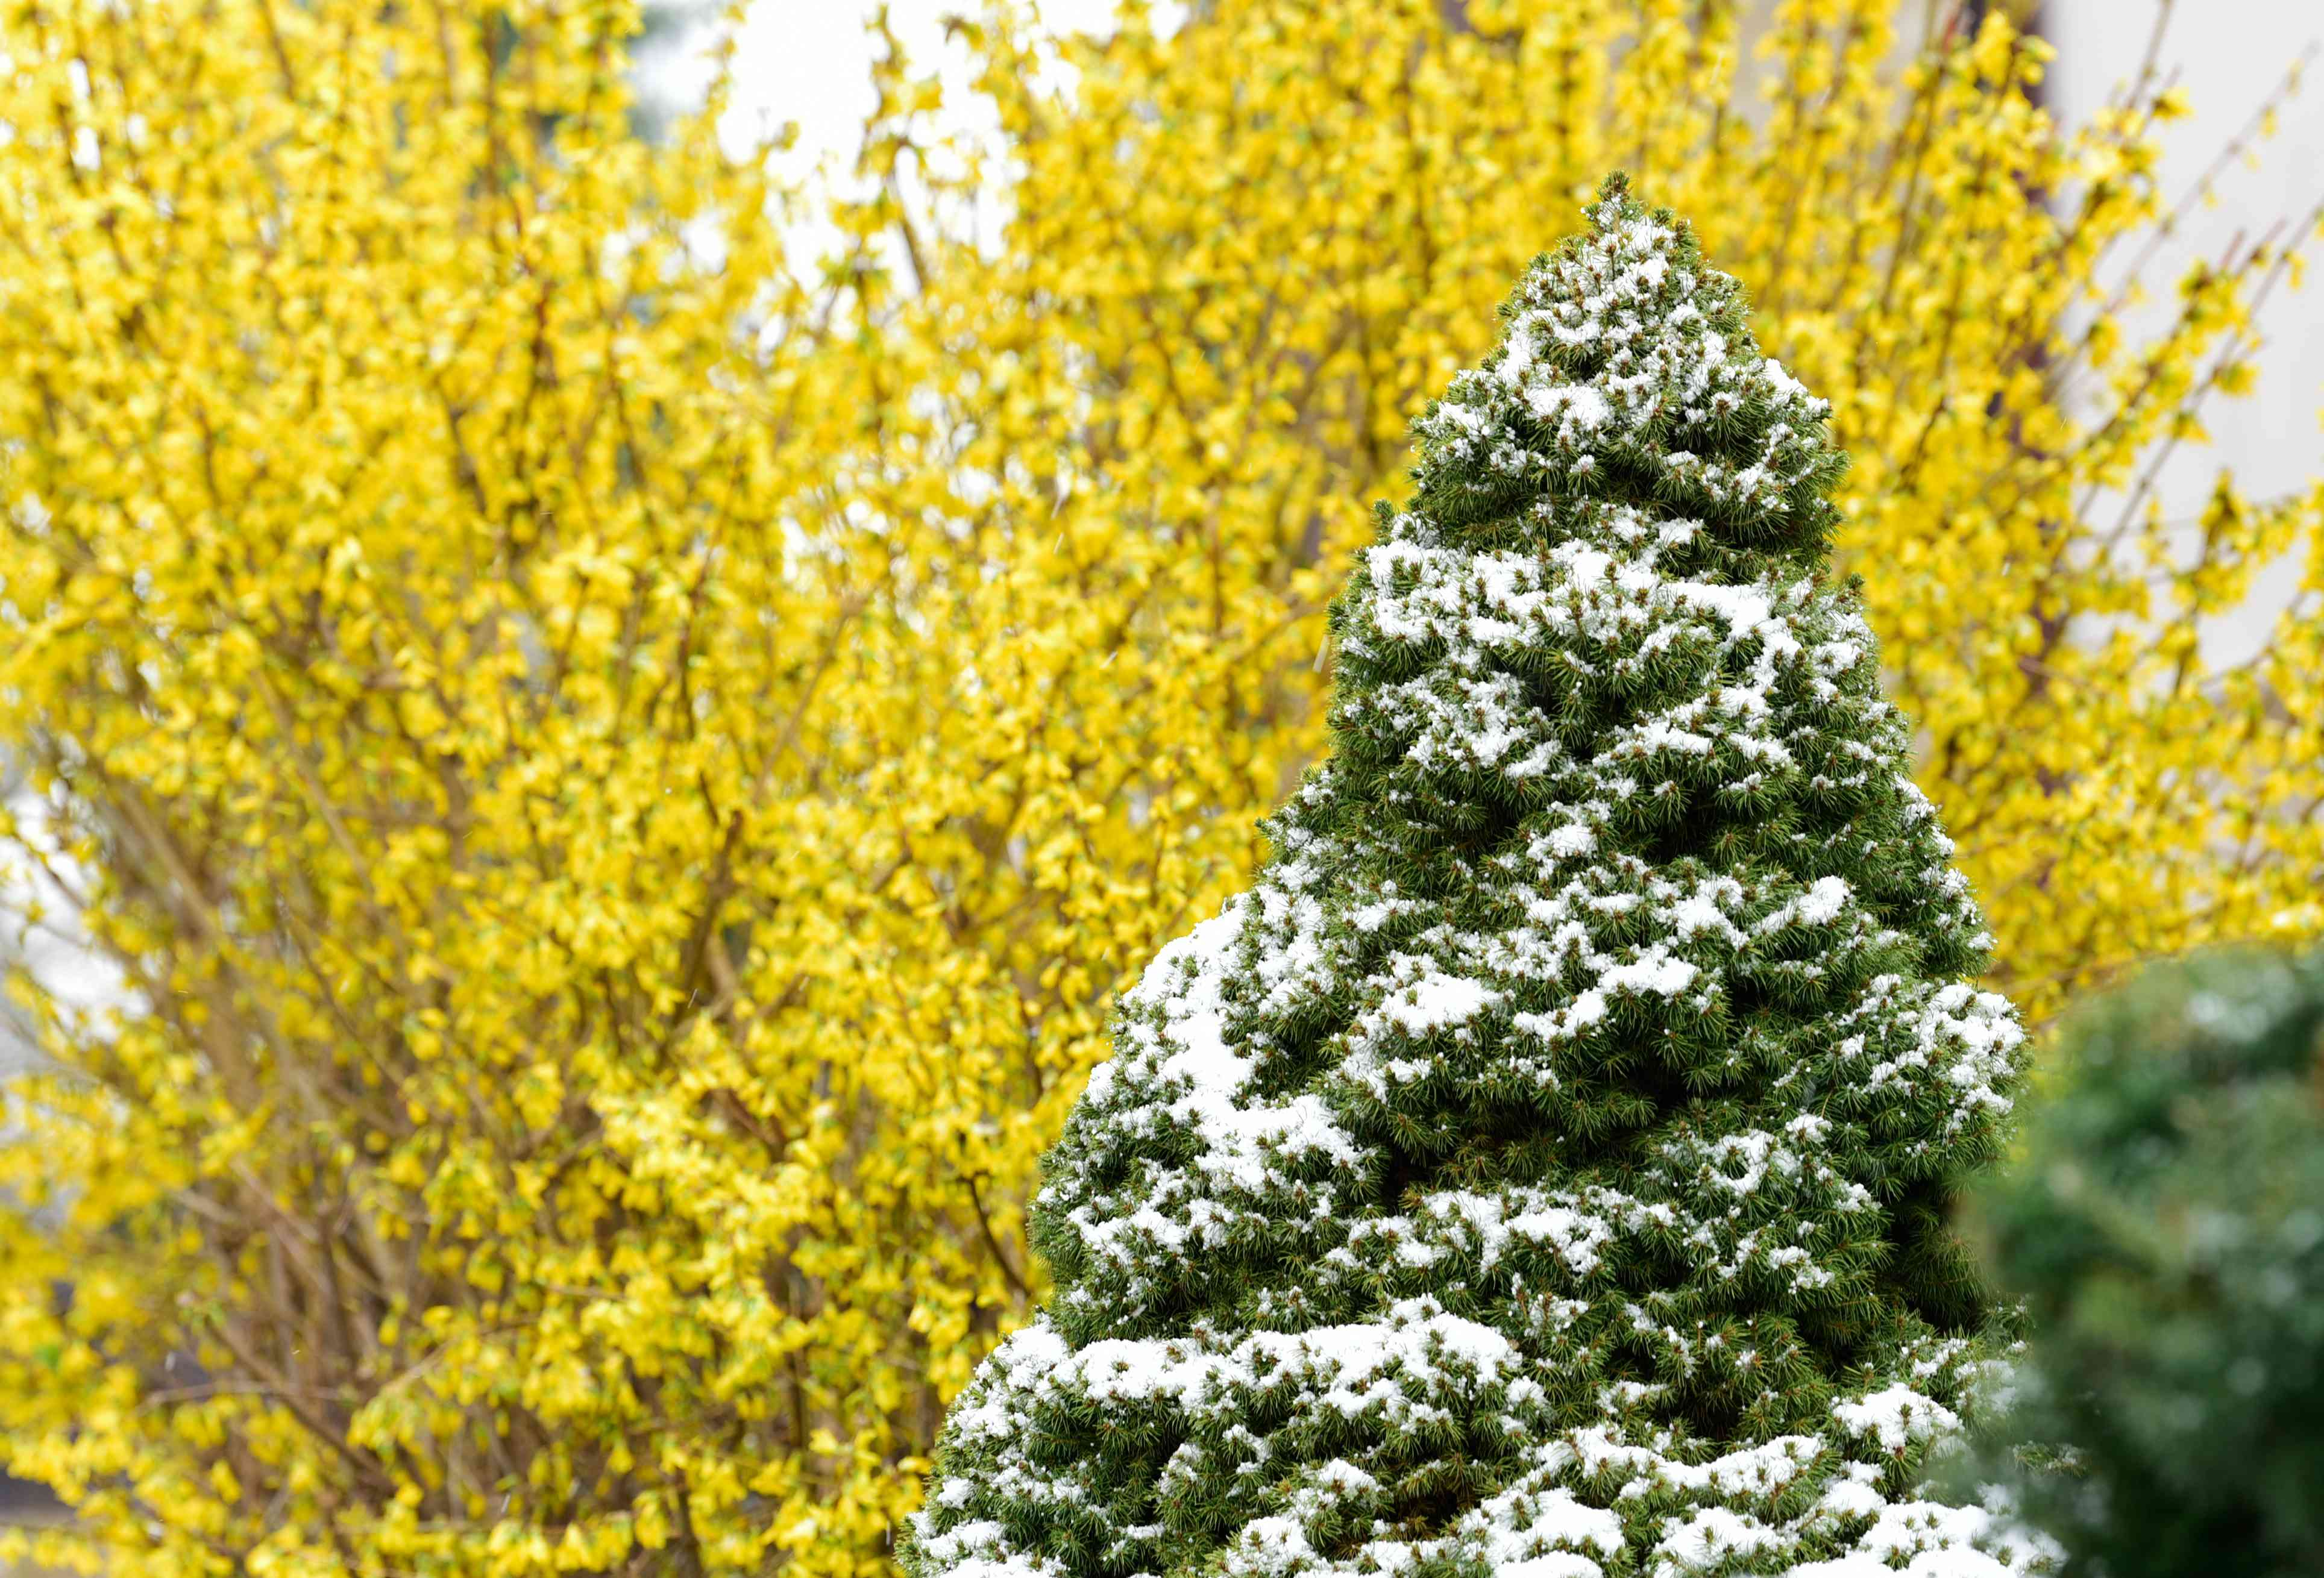 Dwarf Alberta tree top covered in snow in front of yellow-branched tree